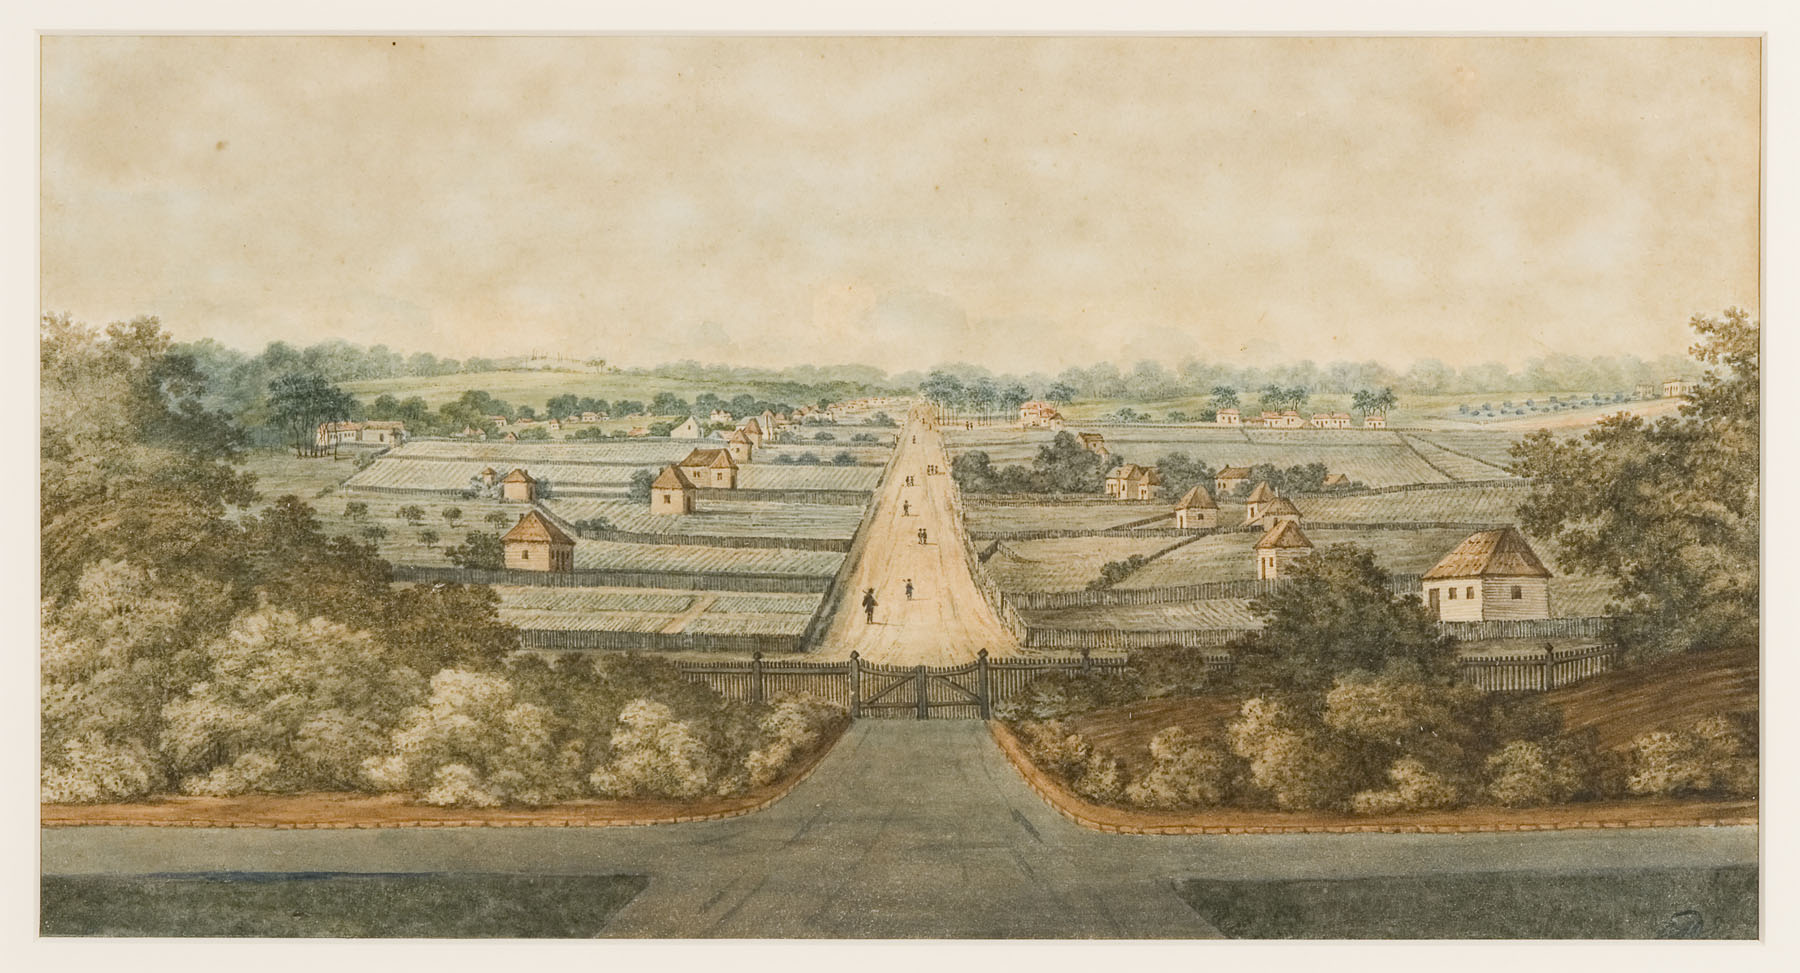 High Street [now George Street] Parramatta, from the gates of Government House, around 1804-1805